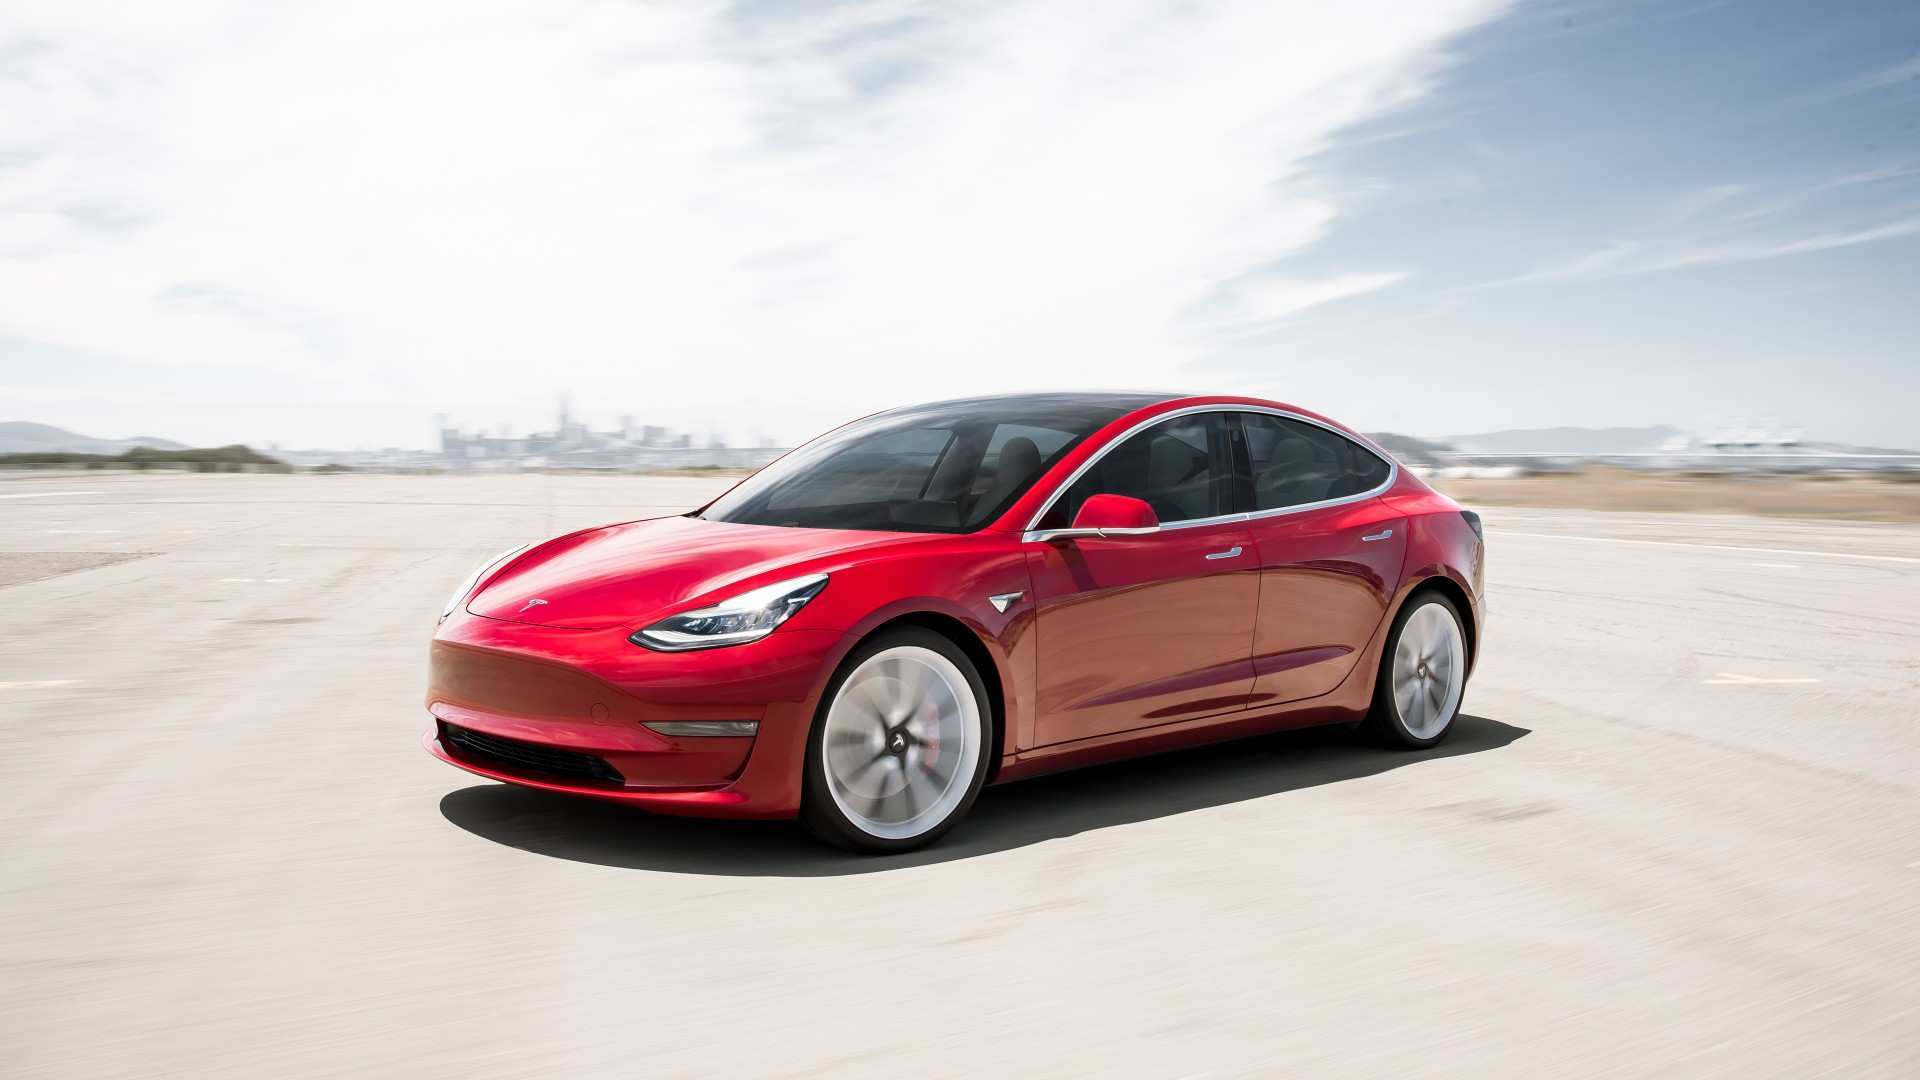 55 New Tesla Goal 2020 Pictures